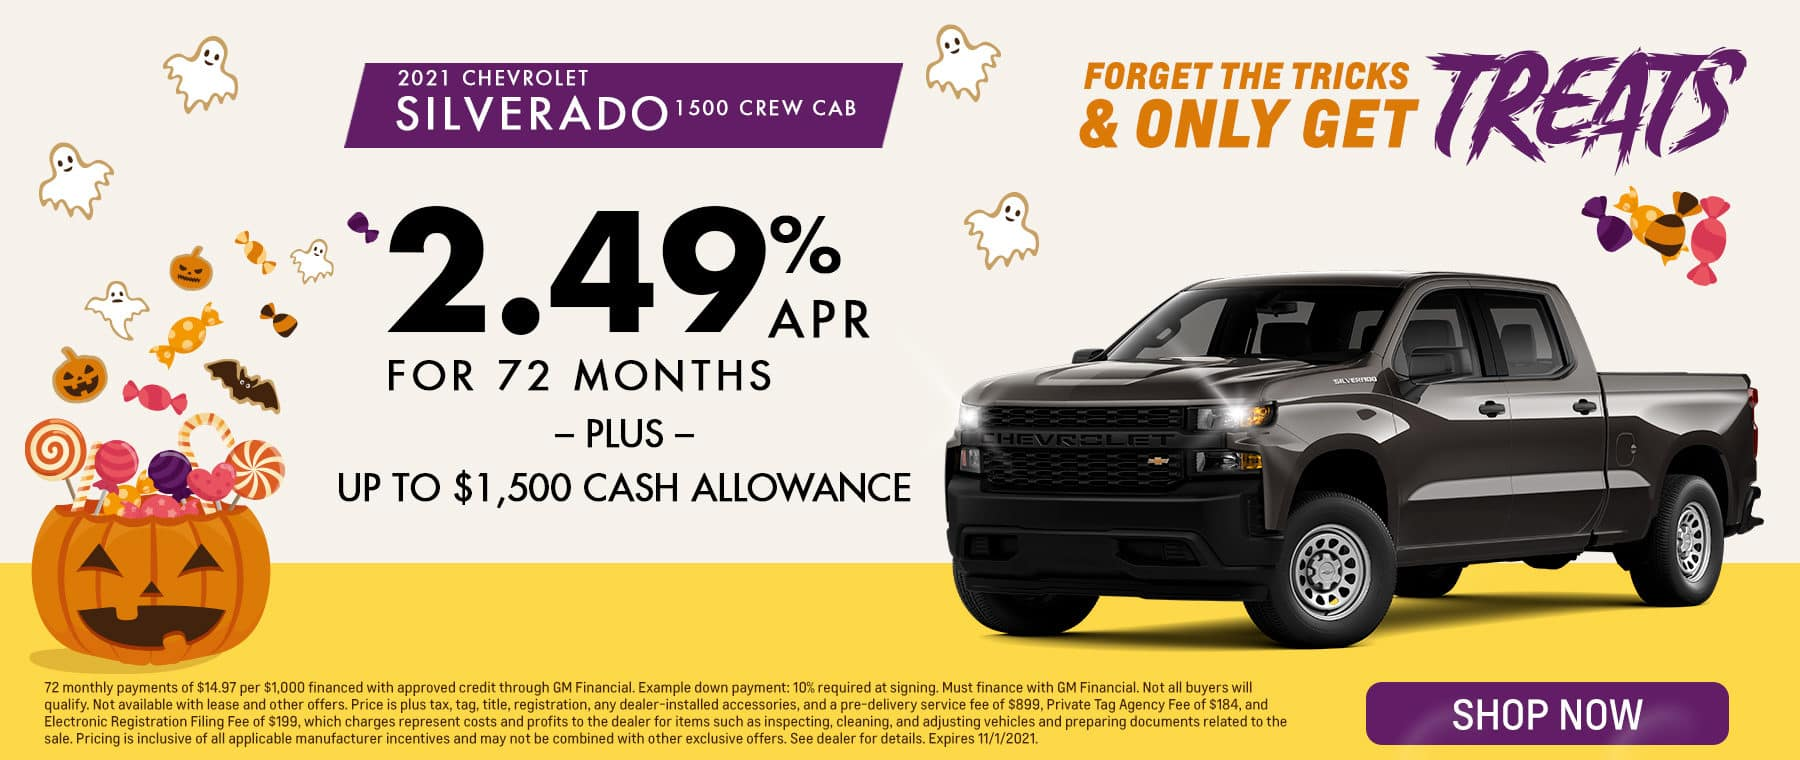 Forget The Tricks & Only Get Treats   2021 Chevrolet Silverado 1500 Crew Cab   2.49% APR For 72 Months – PLUS – Up To $1,500 Cash Allowance